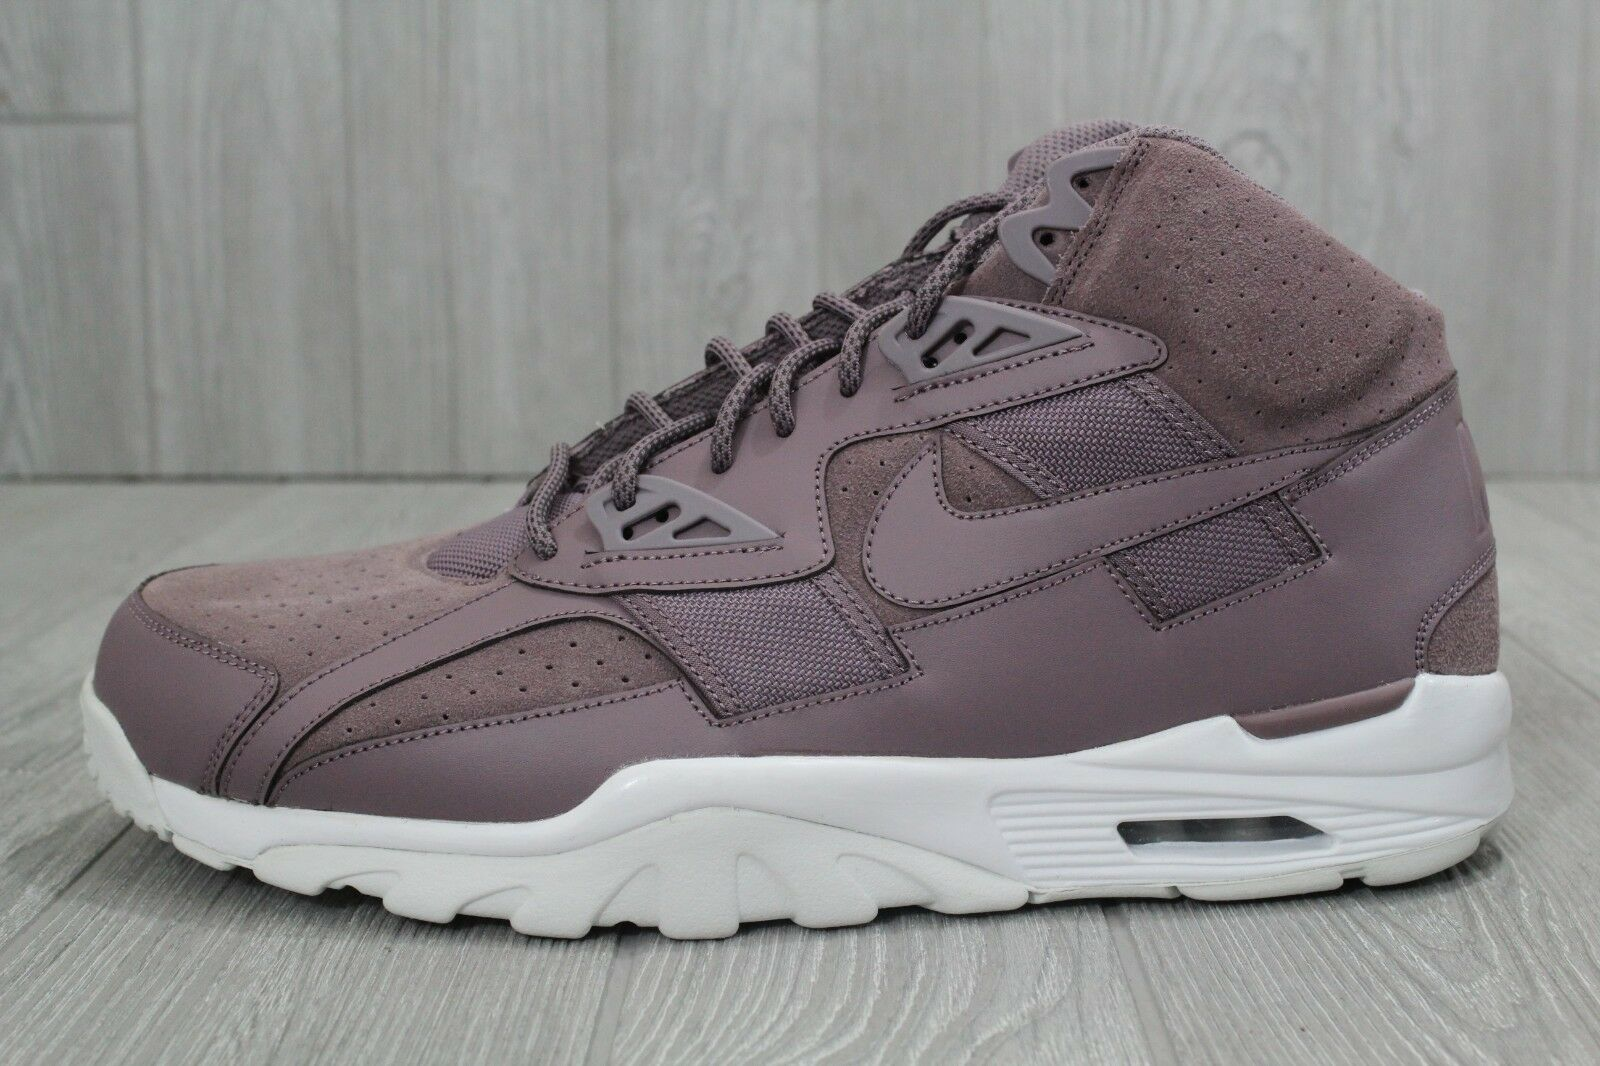 463e1ee0375e 27 New Nike Air Trainer SC High 302346 201 Taupe Grey Shoes Mens Size 14